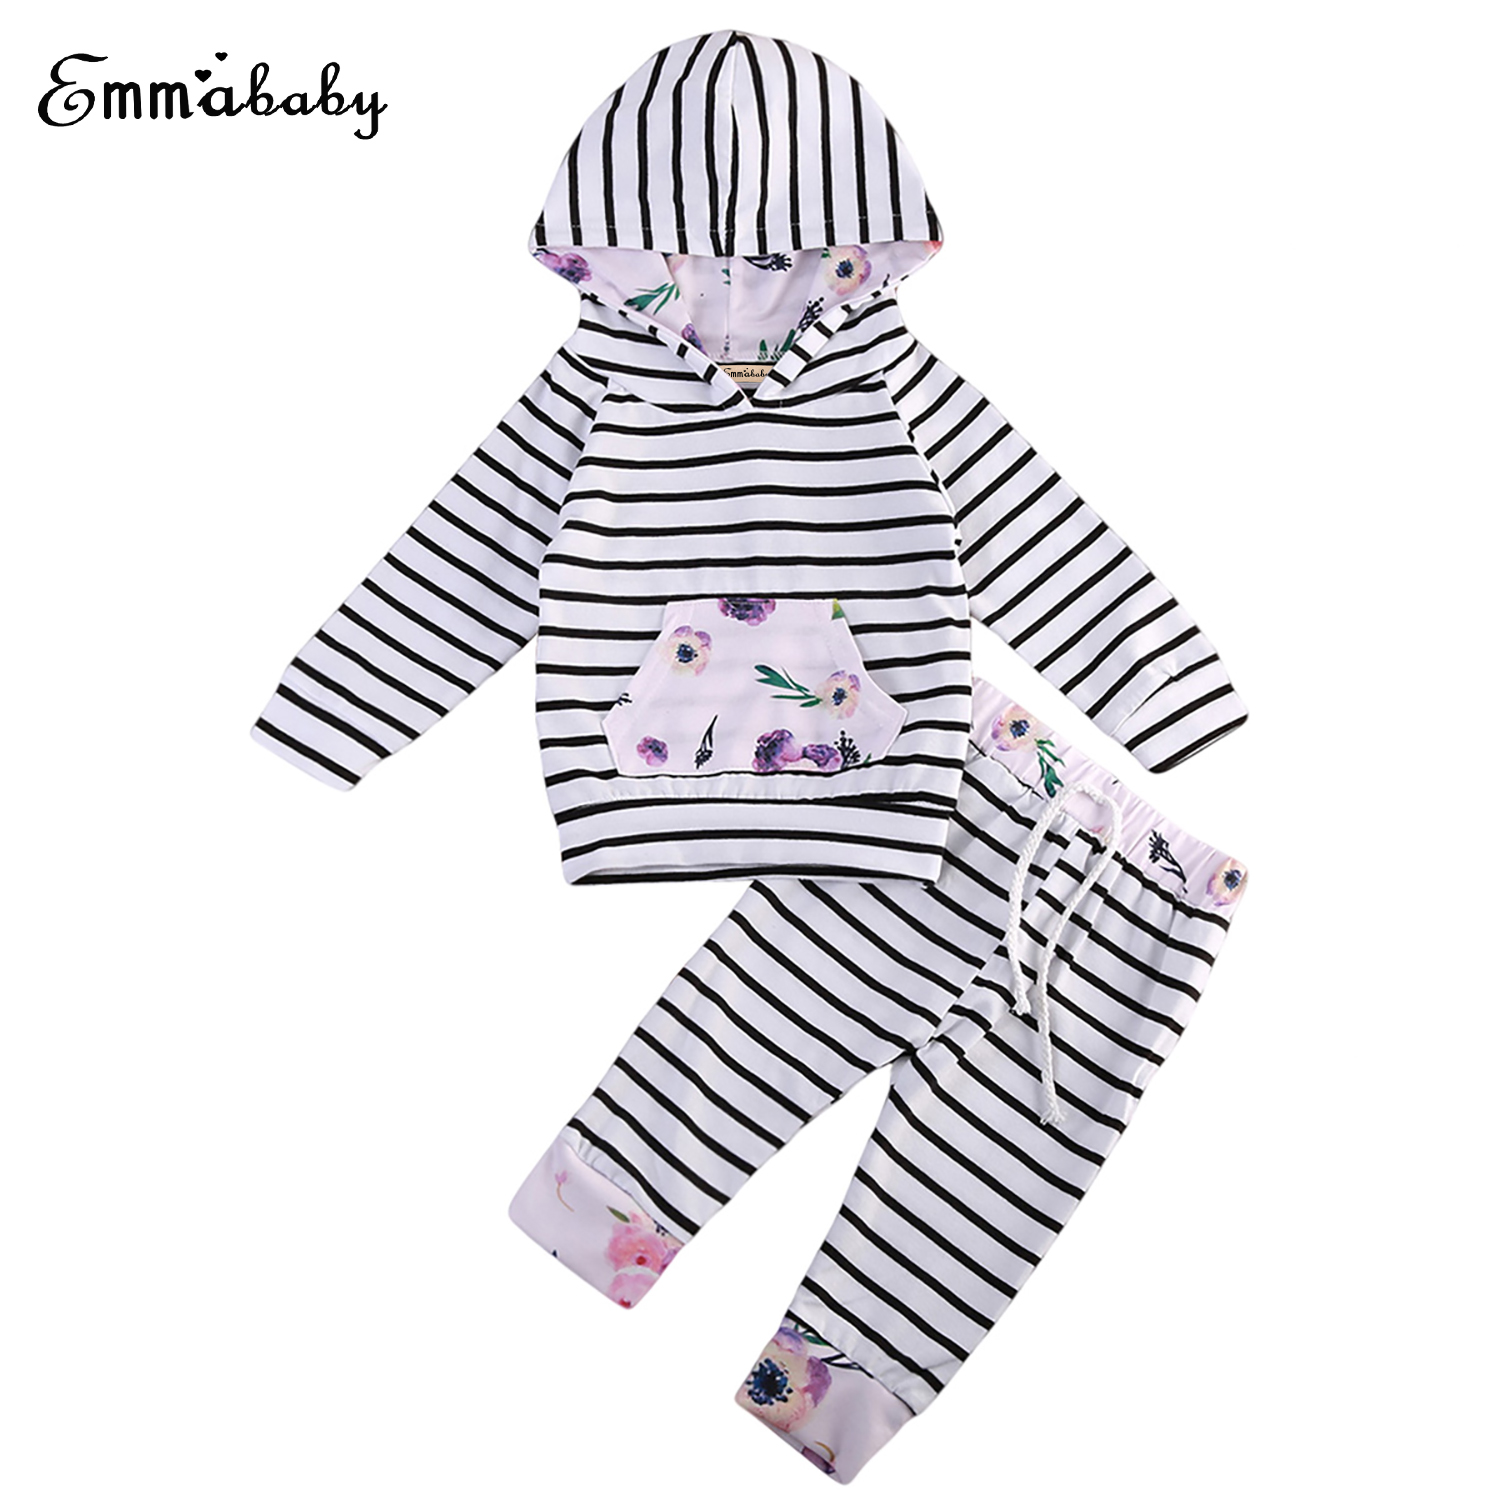 Spring Autumn Fashion Newborn Baby Boy Girls Stripes Clothes Sets Floral Long Sleeve Hooded Tops Pants 2pcs Outfits Set Clothes